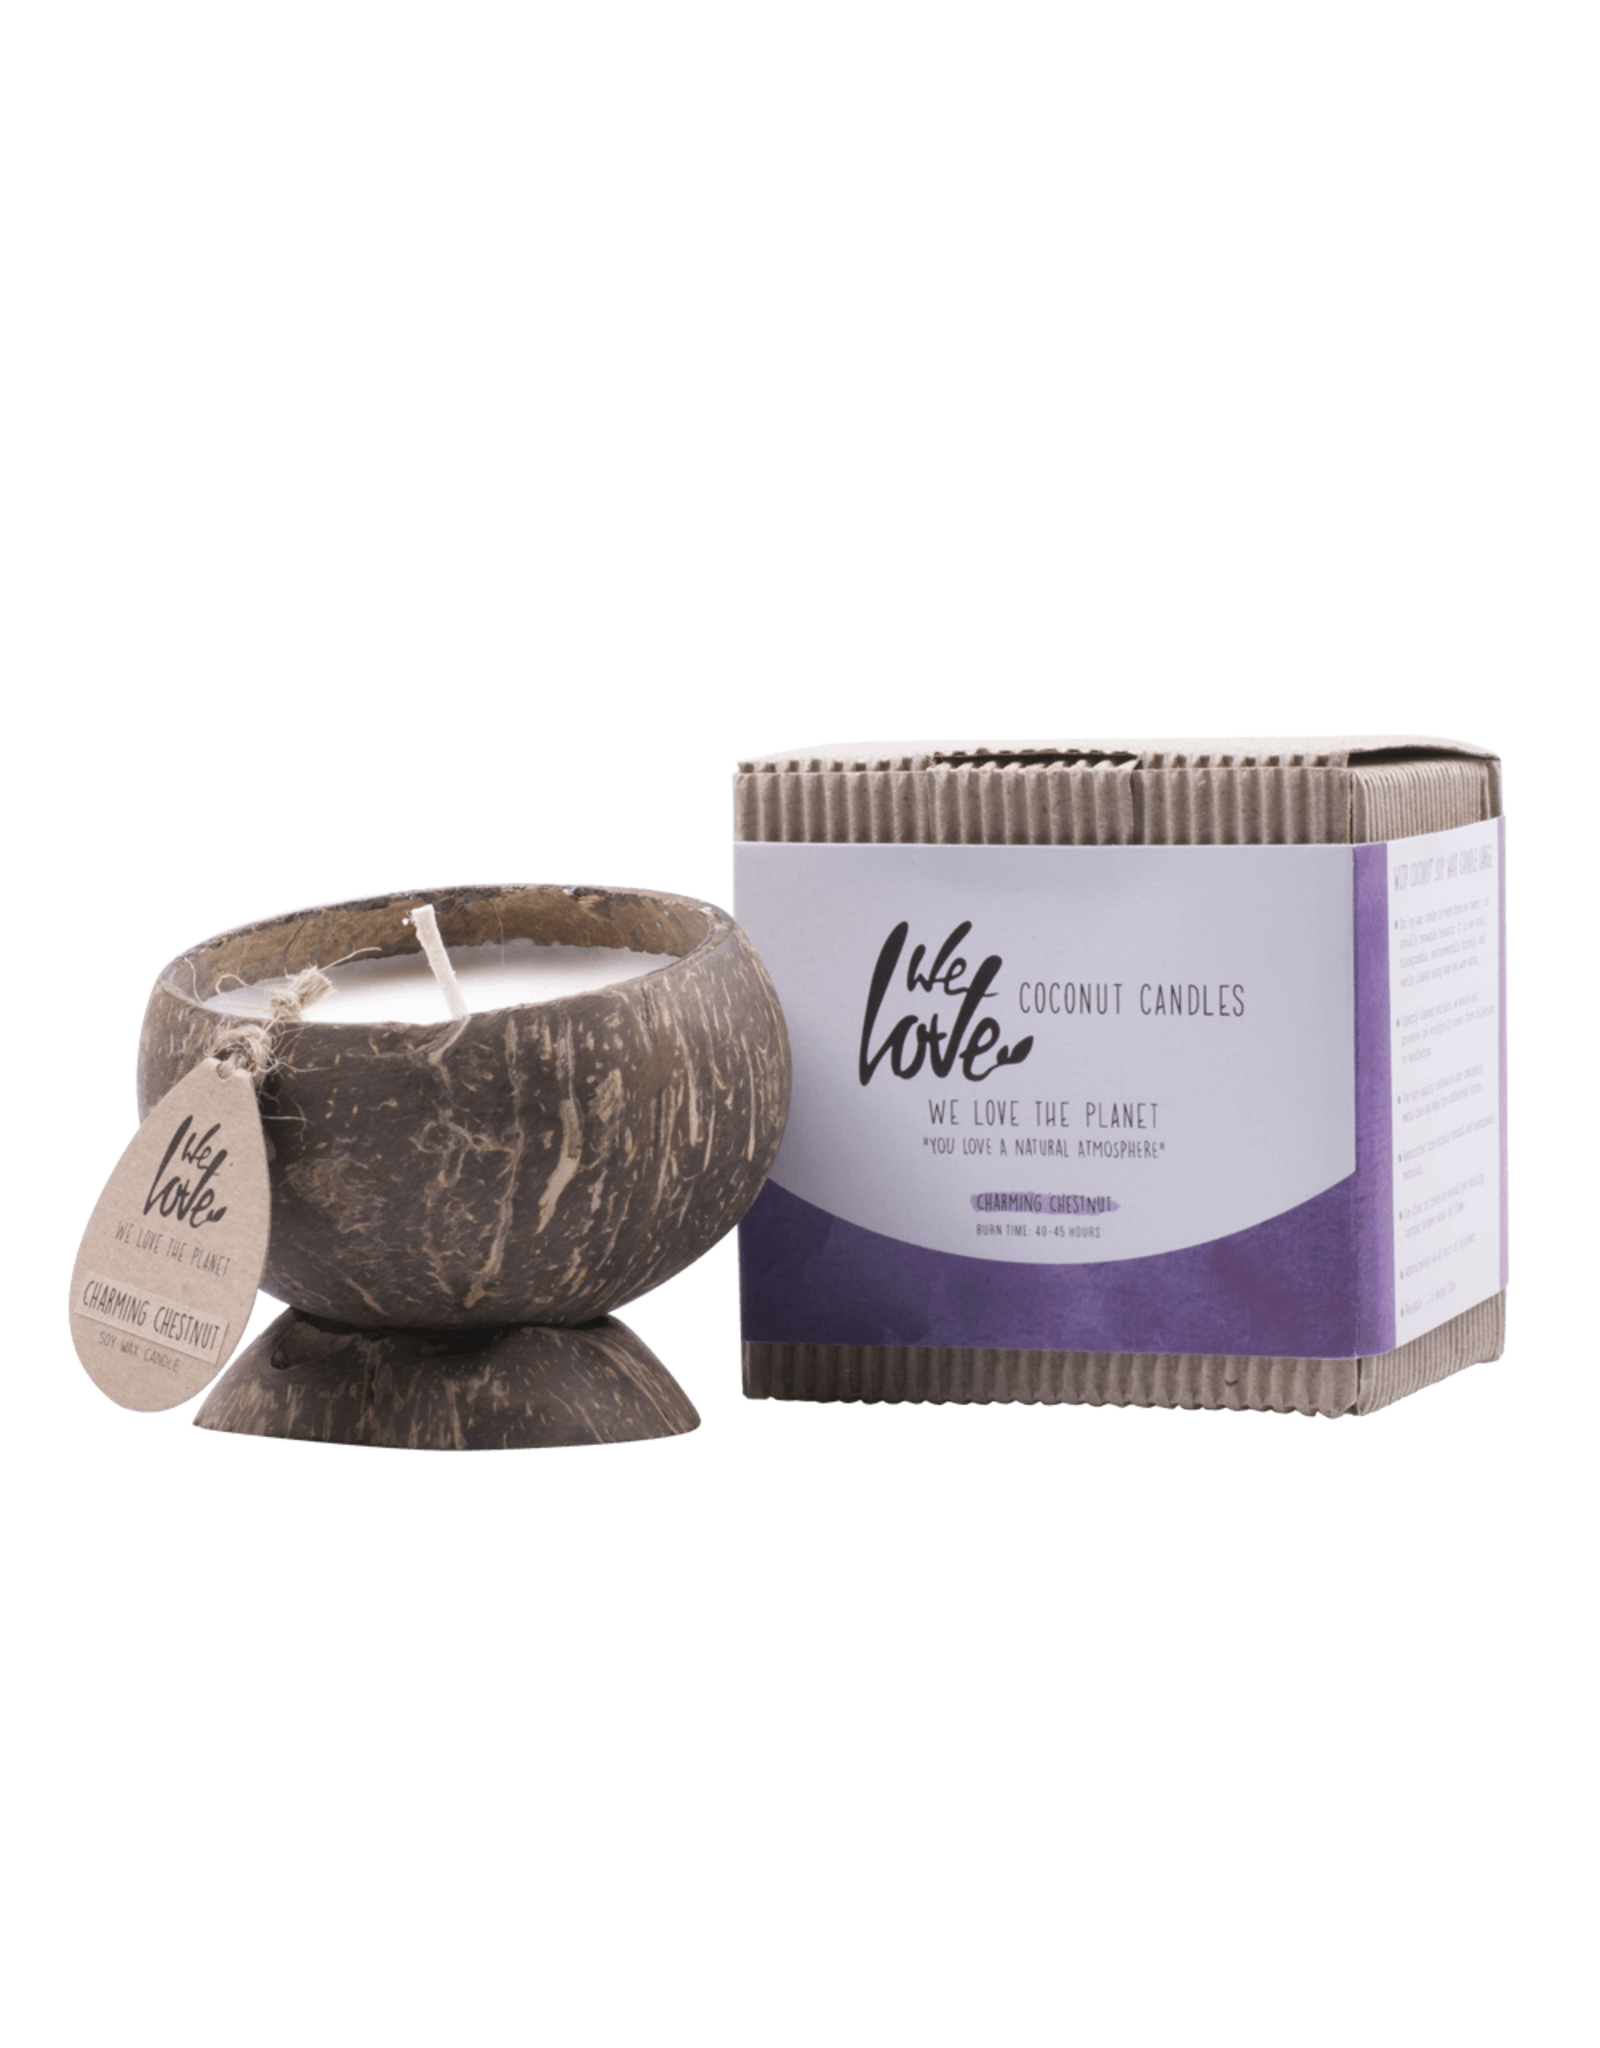 We Love The Planet Coconut soy wax candle